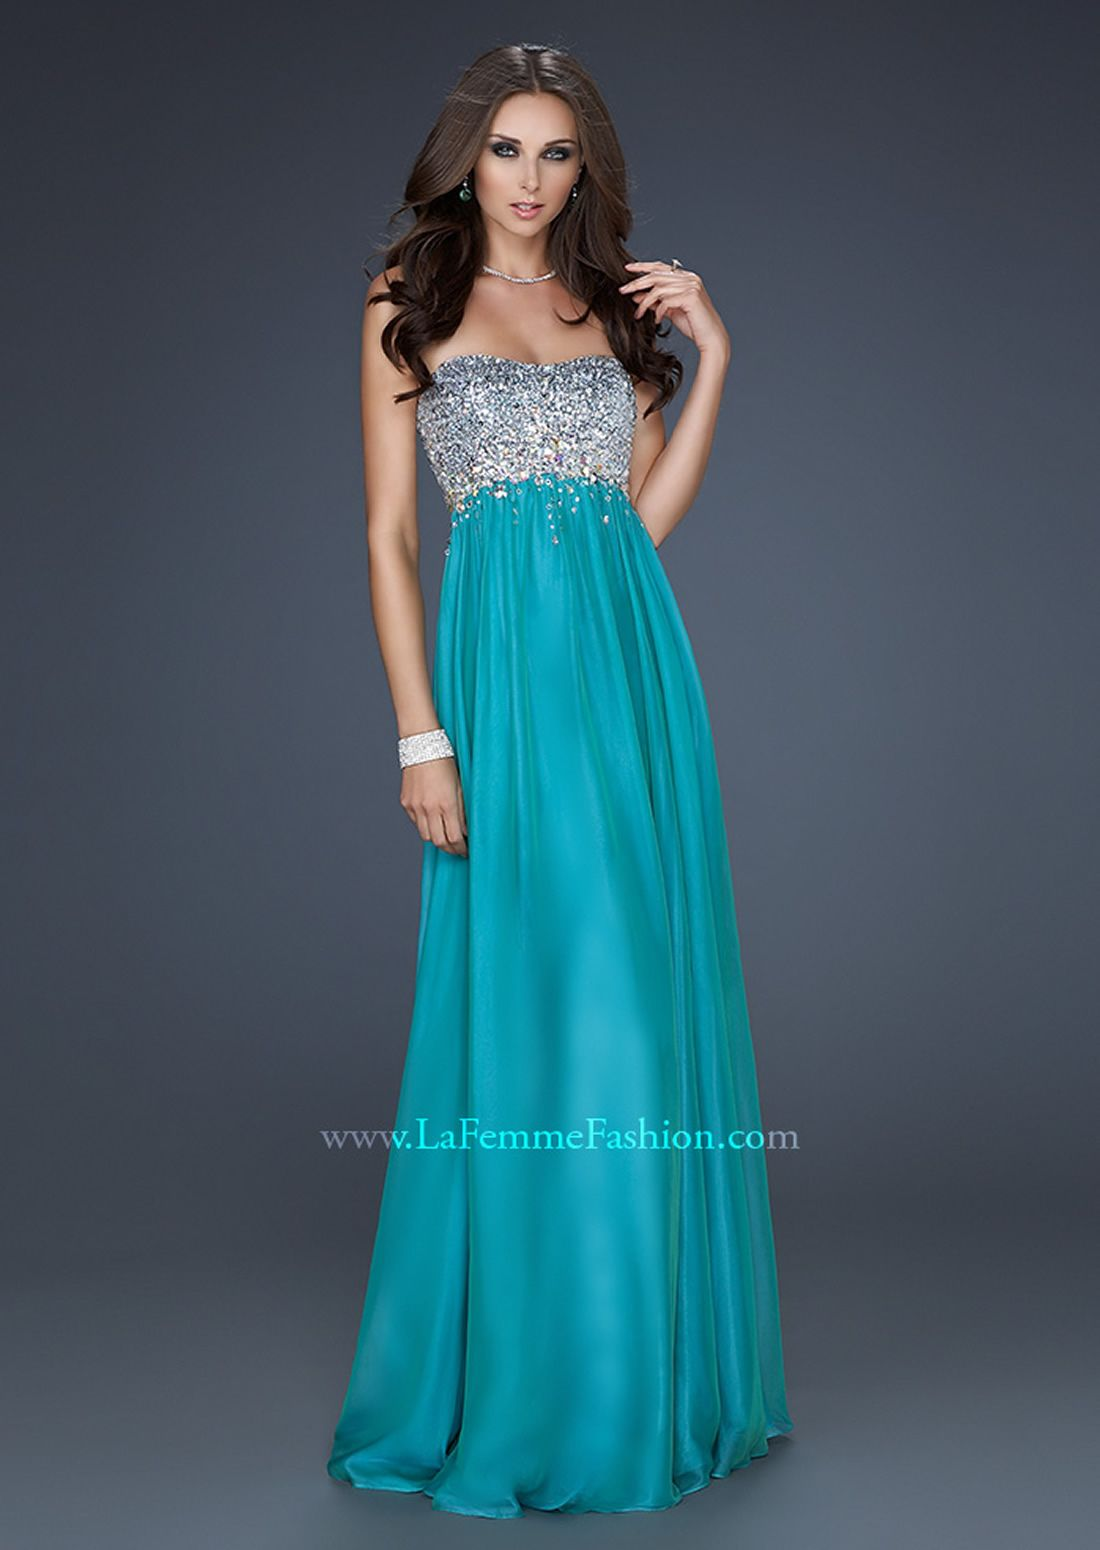 Sparkly top and turquoise base color | Prom Dresses | Pinterest ...